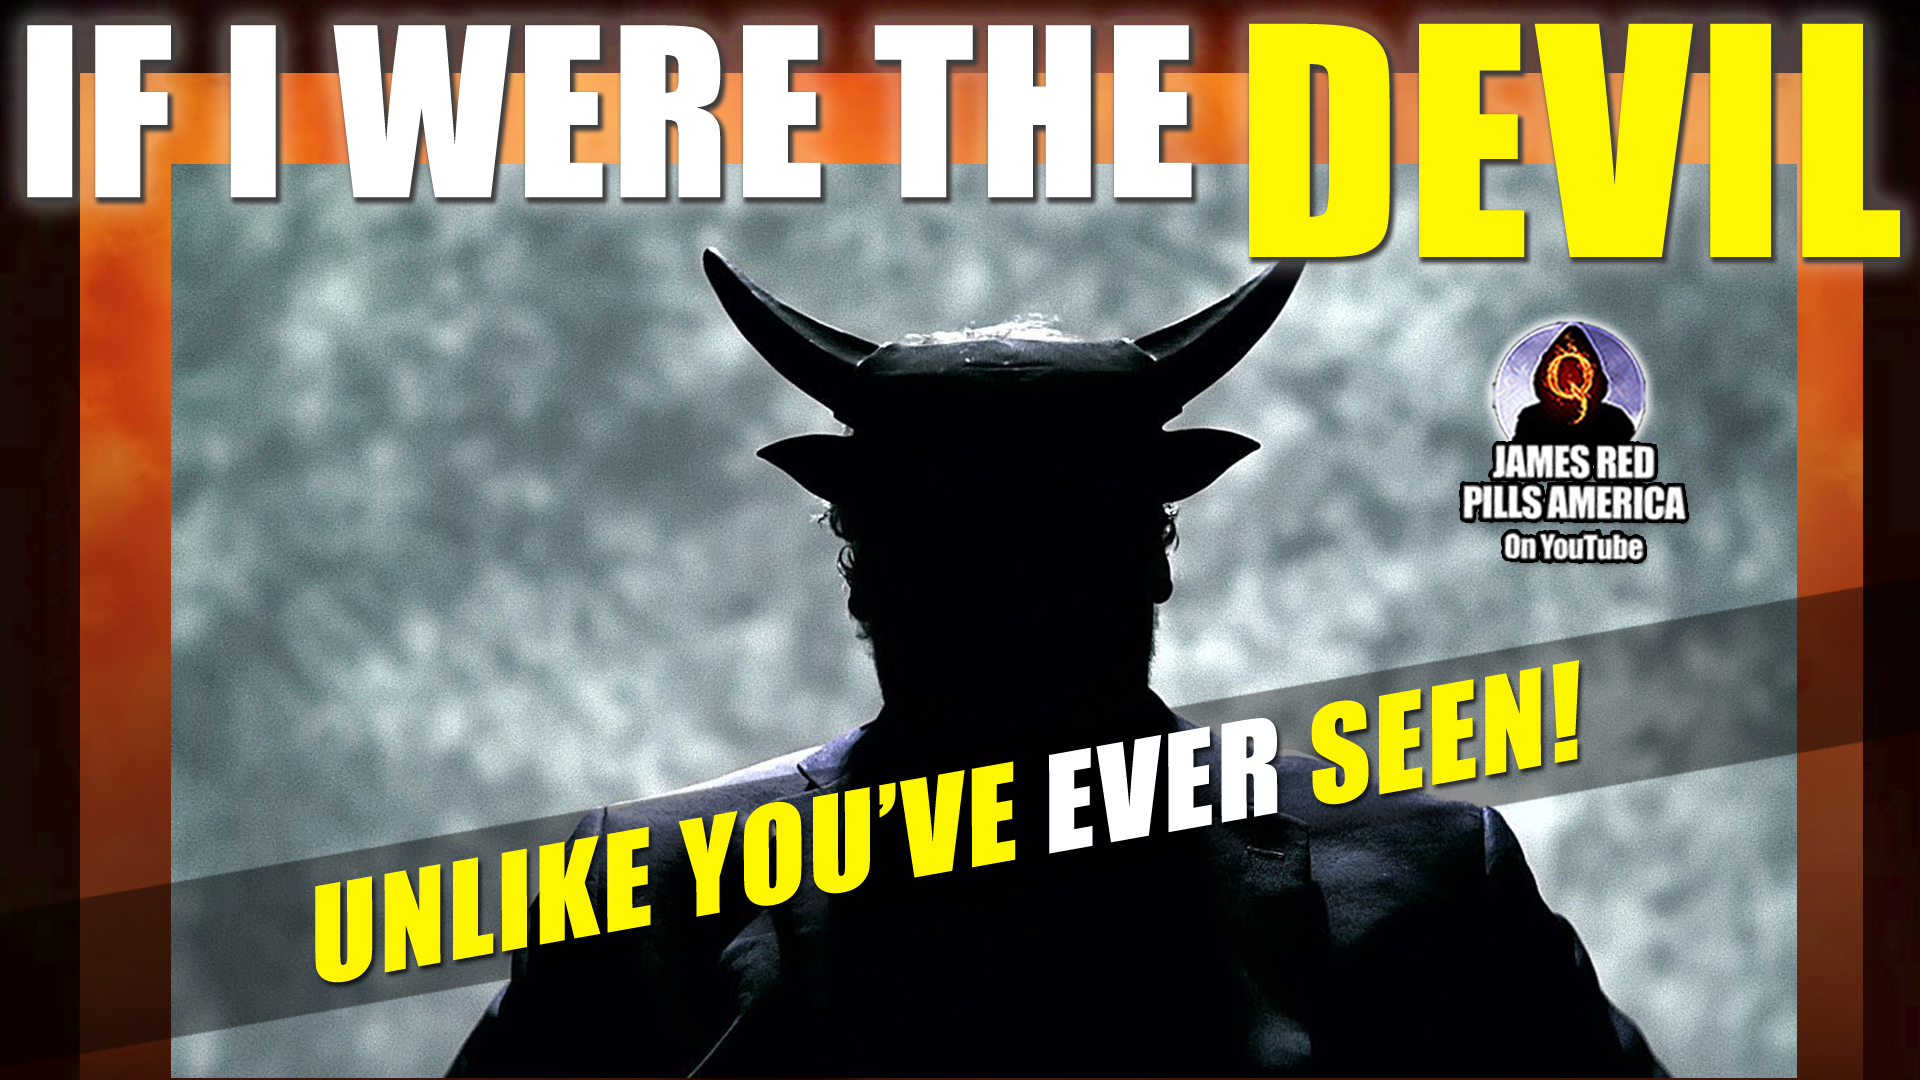 TERRIFYING VIDEO!  IF I WERE THE DEVIL - Future Proves Past Again! Do NOT Miss This SHORT But POWERFUL Video!